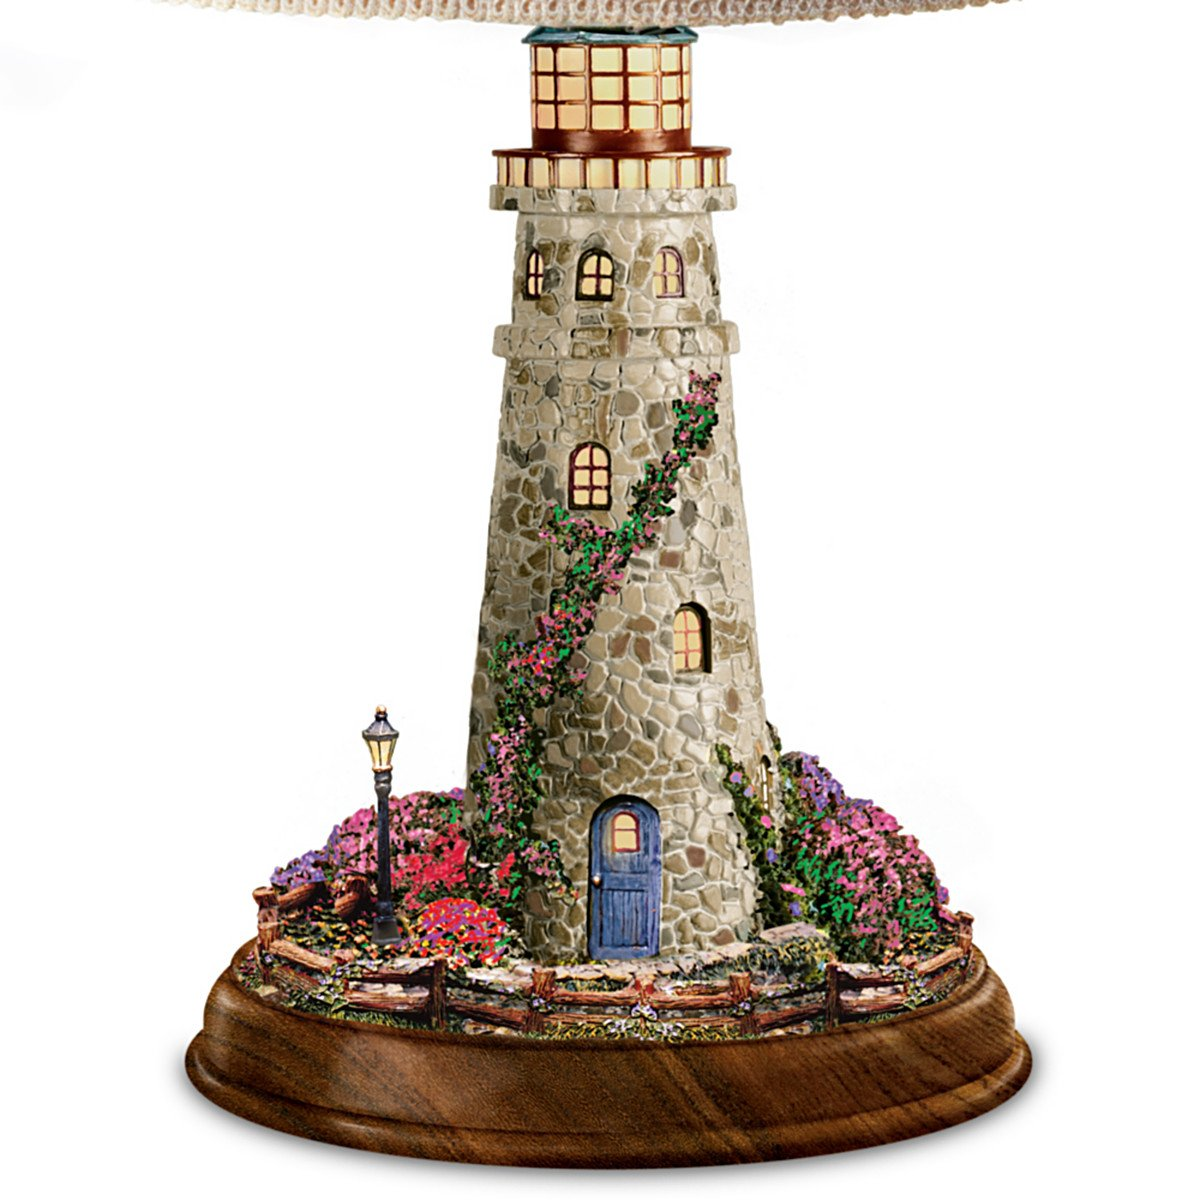 Thomas Kinkade Lamp With The Village Lighthouse Artwork On Shade And Lighthouse Base by The Bradford Exchange by Bradford Exchange (Image #3)